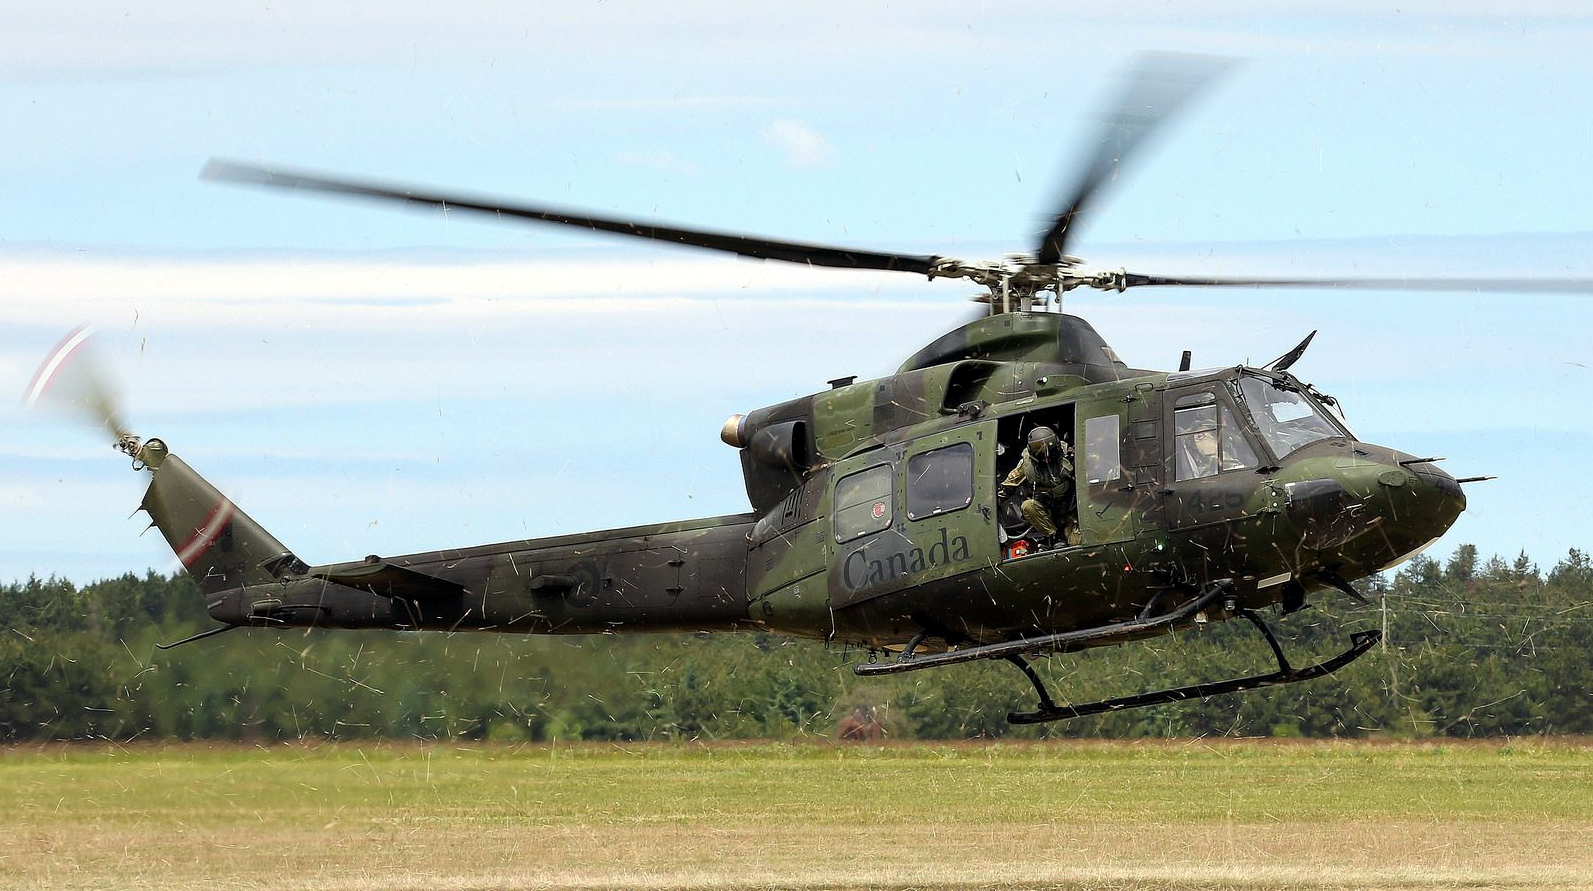 Royal Canadian Air Force Extends CH-146 Helicopter Service Life